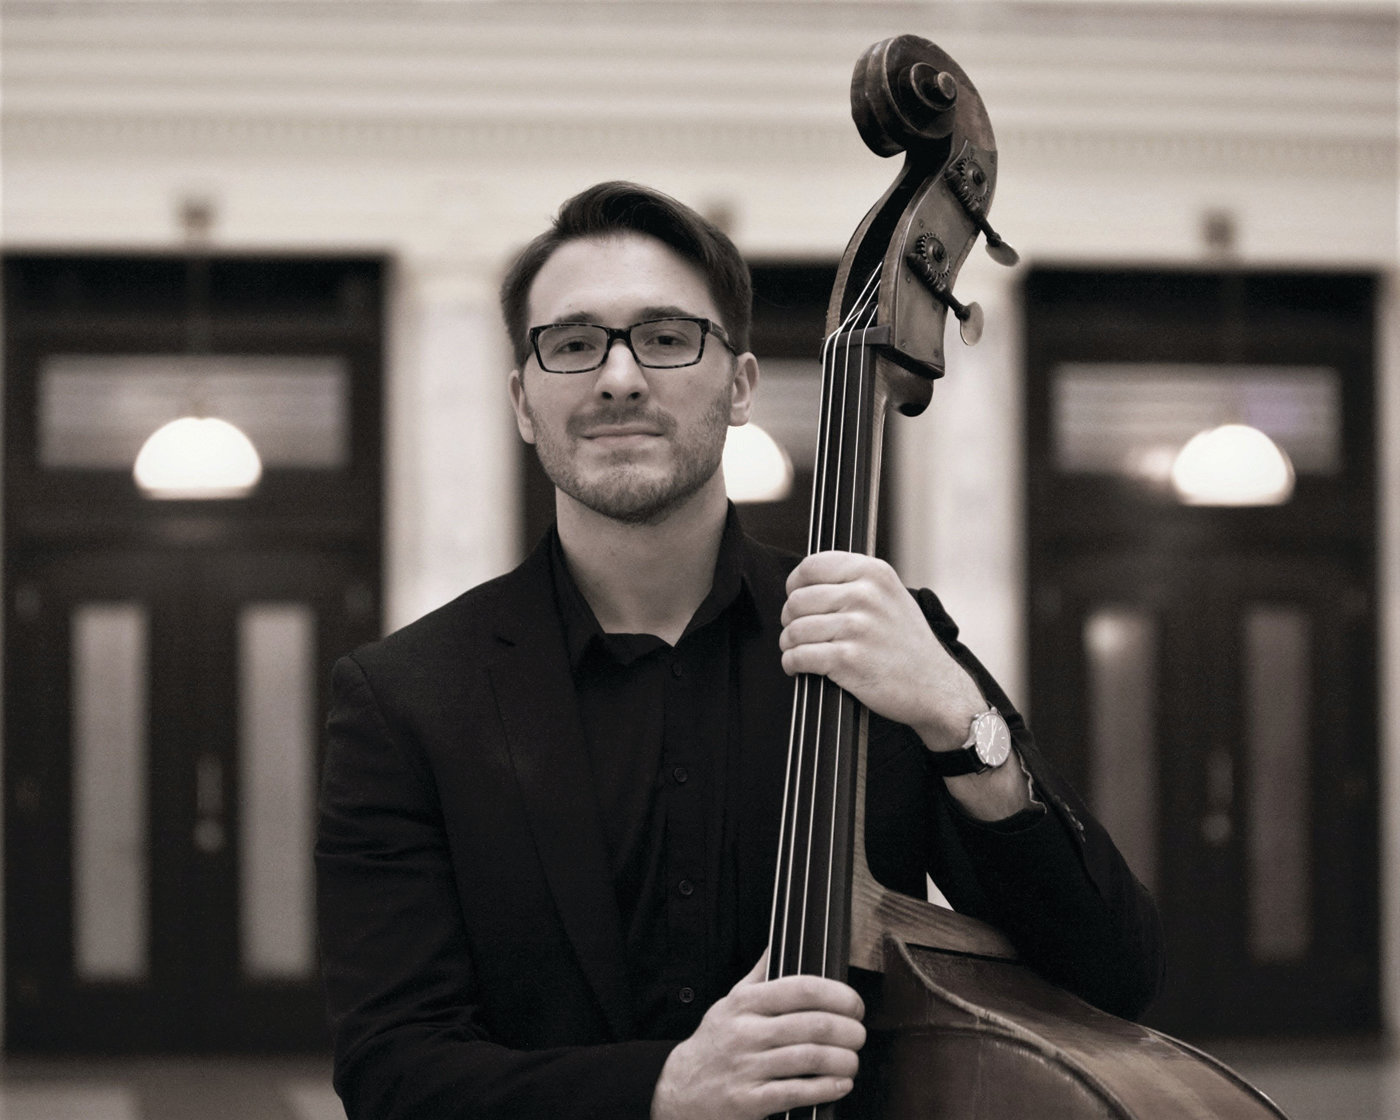 MUSIC FOR THE COMMUNITY: Joseph Bentley, bassist, will be among the performers taking the stage at the McVinney Auditorium in Providence on March 3.